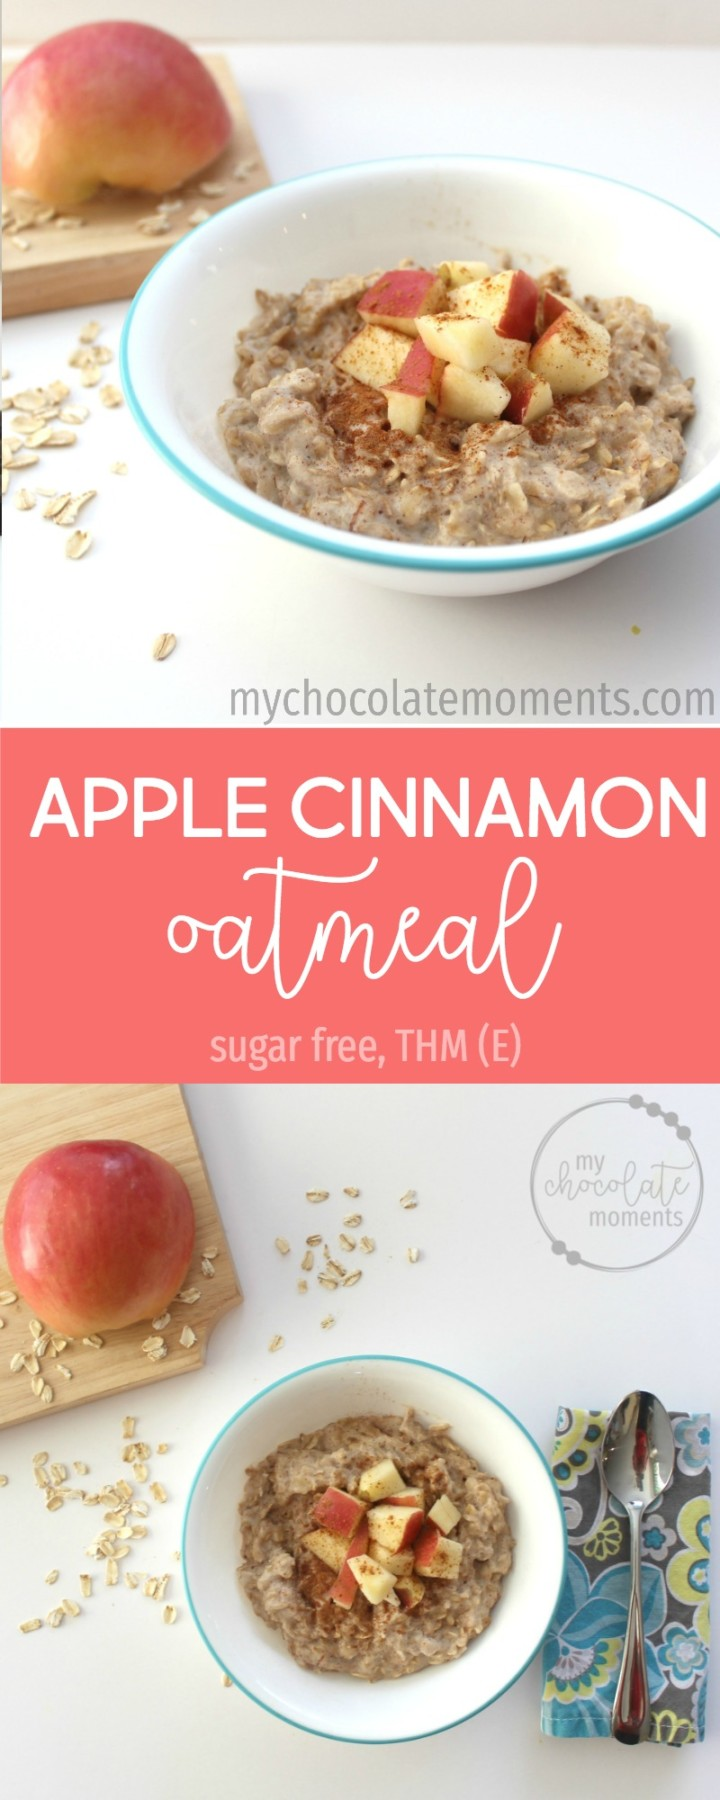 Apple cinnamon oatmeal - an easy, quick, and delicious alternative to instant oatmeal. Trim Healthy Mama E meal